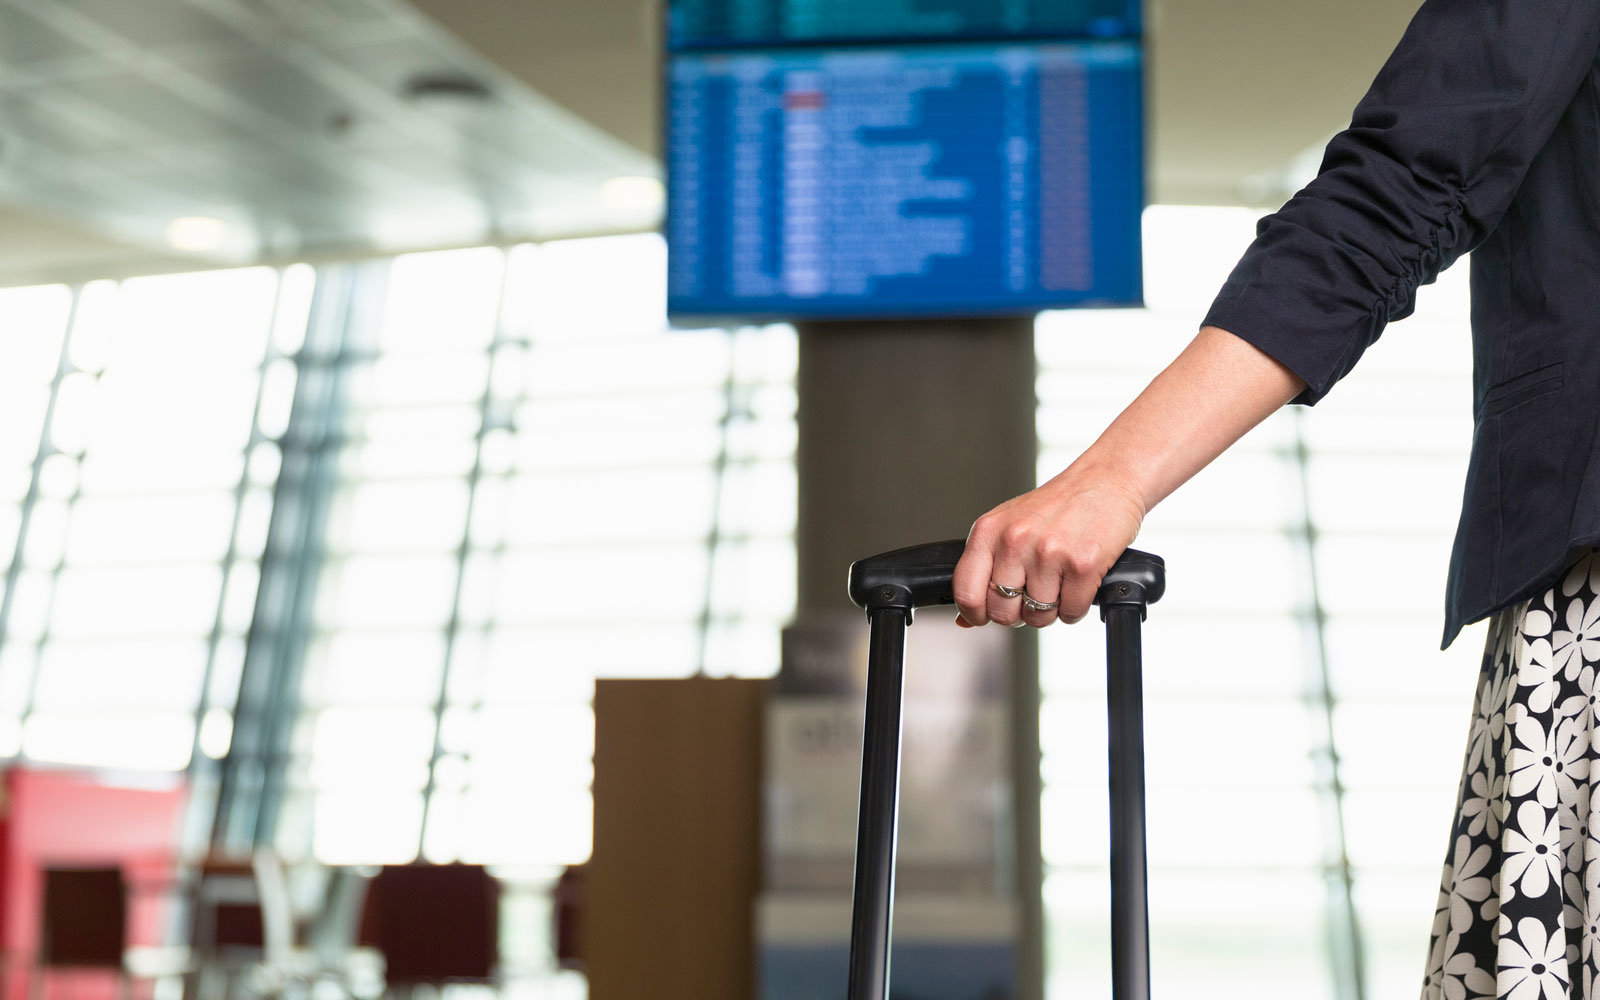 Baggage fees have an unintended positive consequence.